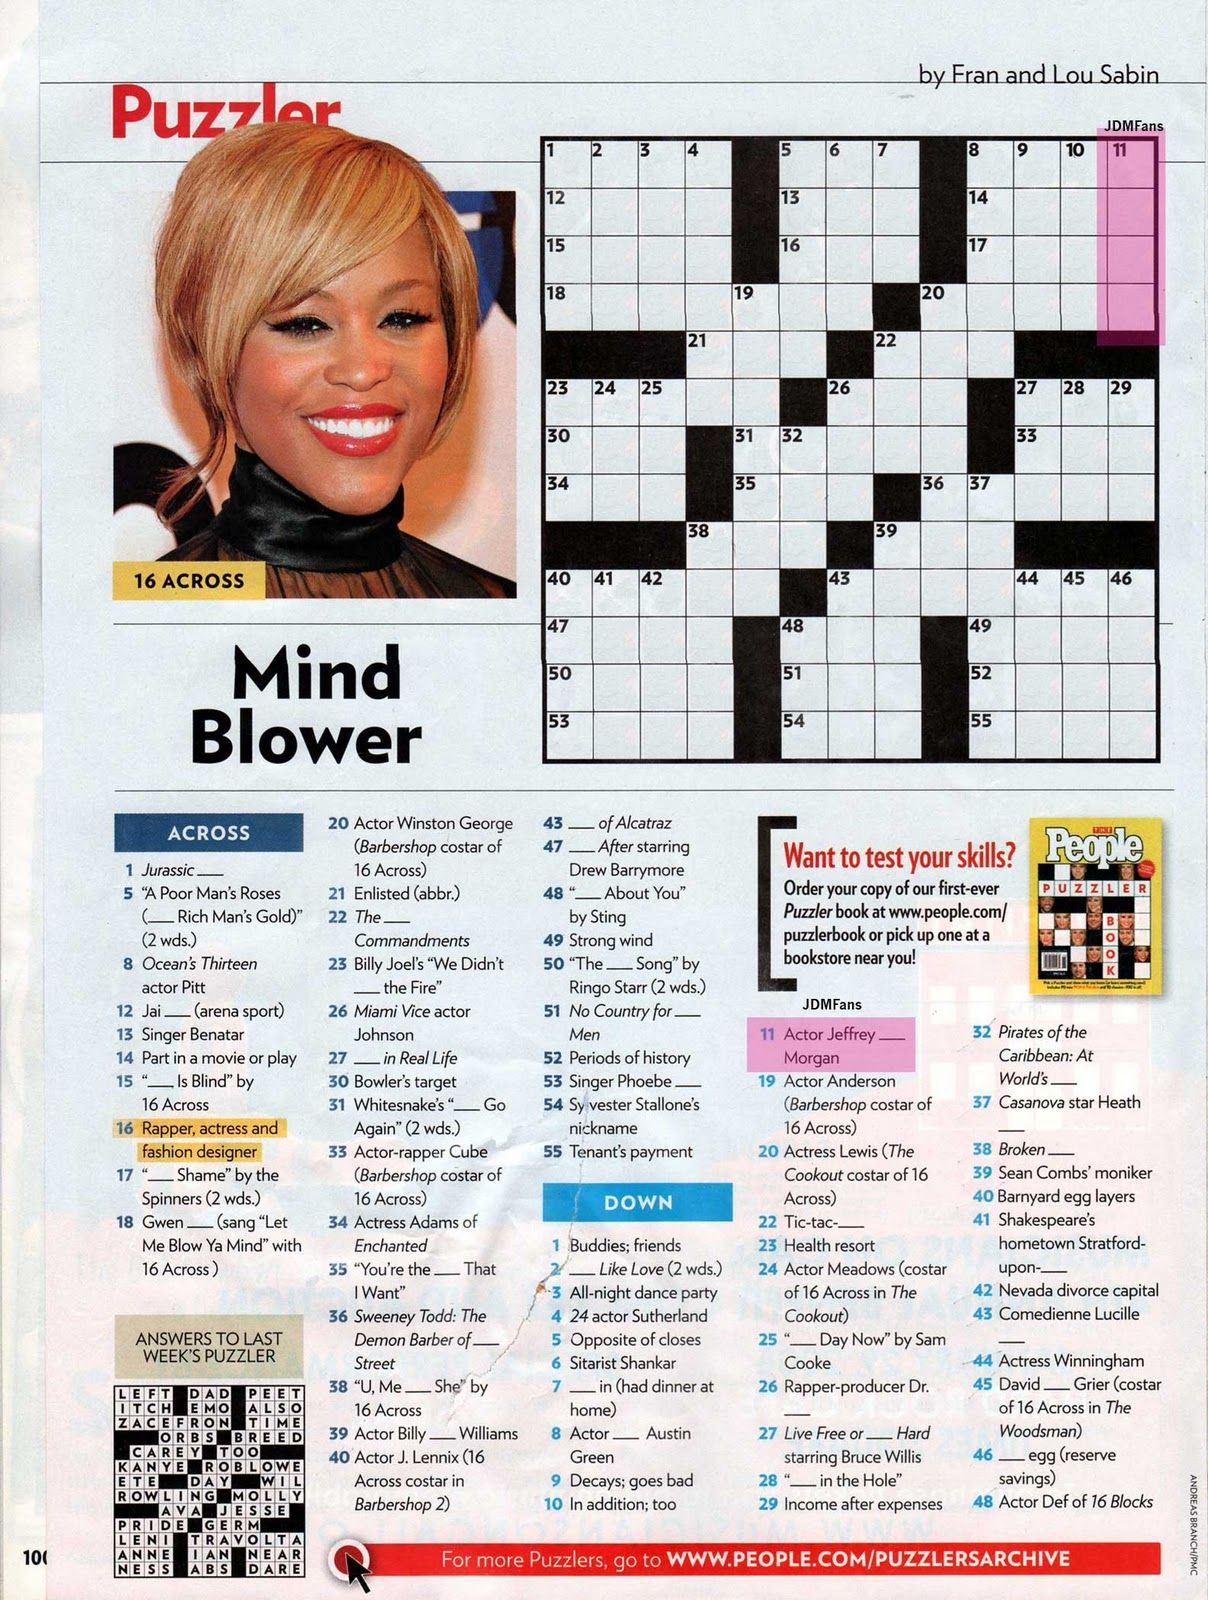 The Celebrity 100 Crossword Puzzle - forbes.com